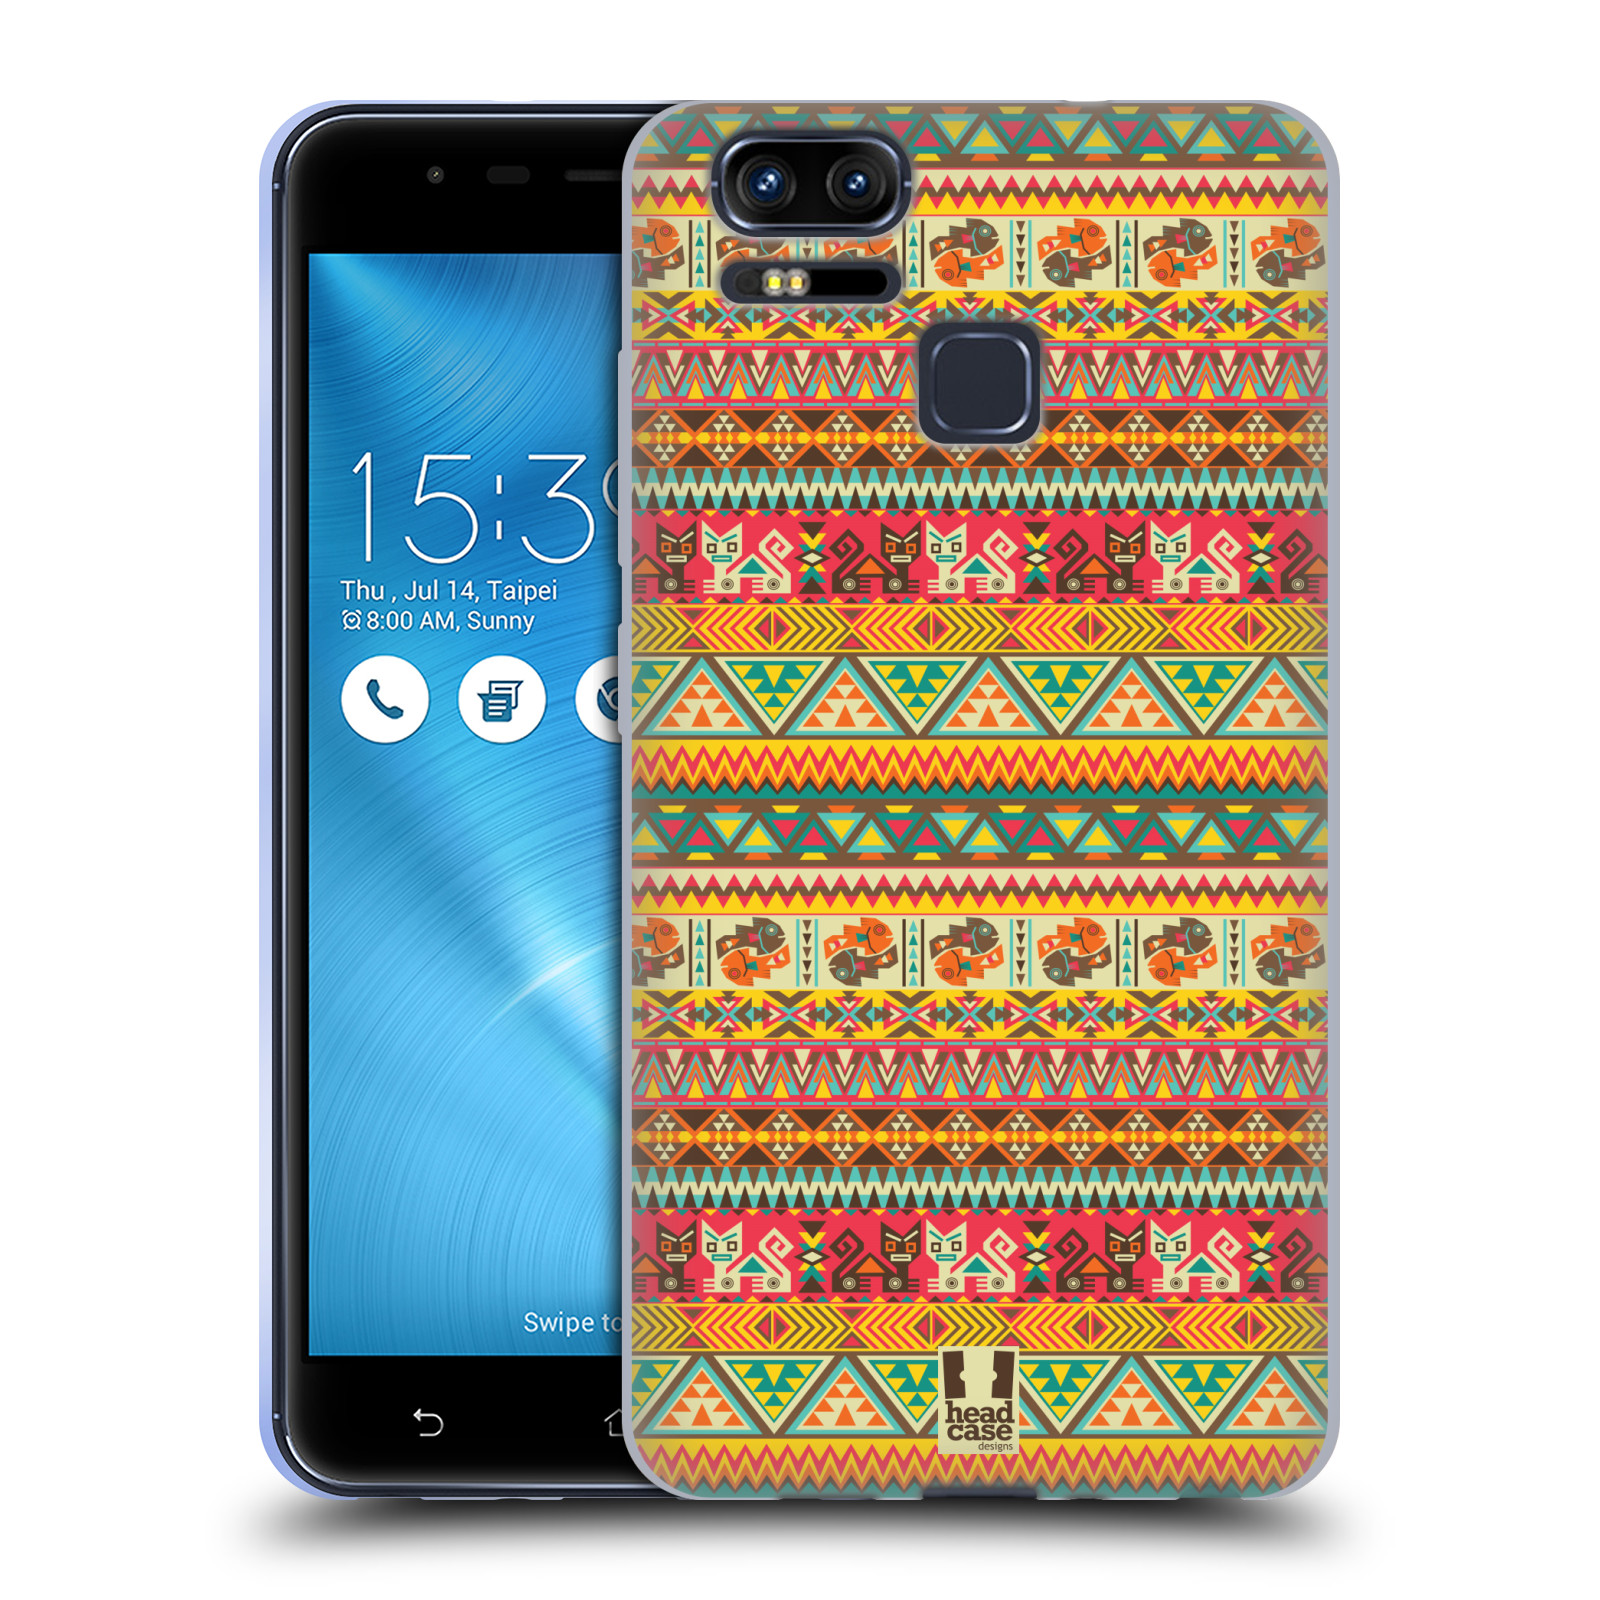 HEAD-CASE-DESIGNS-AMERINDIAN-2-SOFT-GEL-CASE-FOR-ASUS-ZENFONE-3-ZOOM-ZE553KL